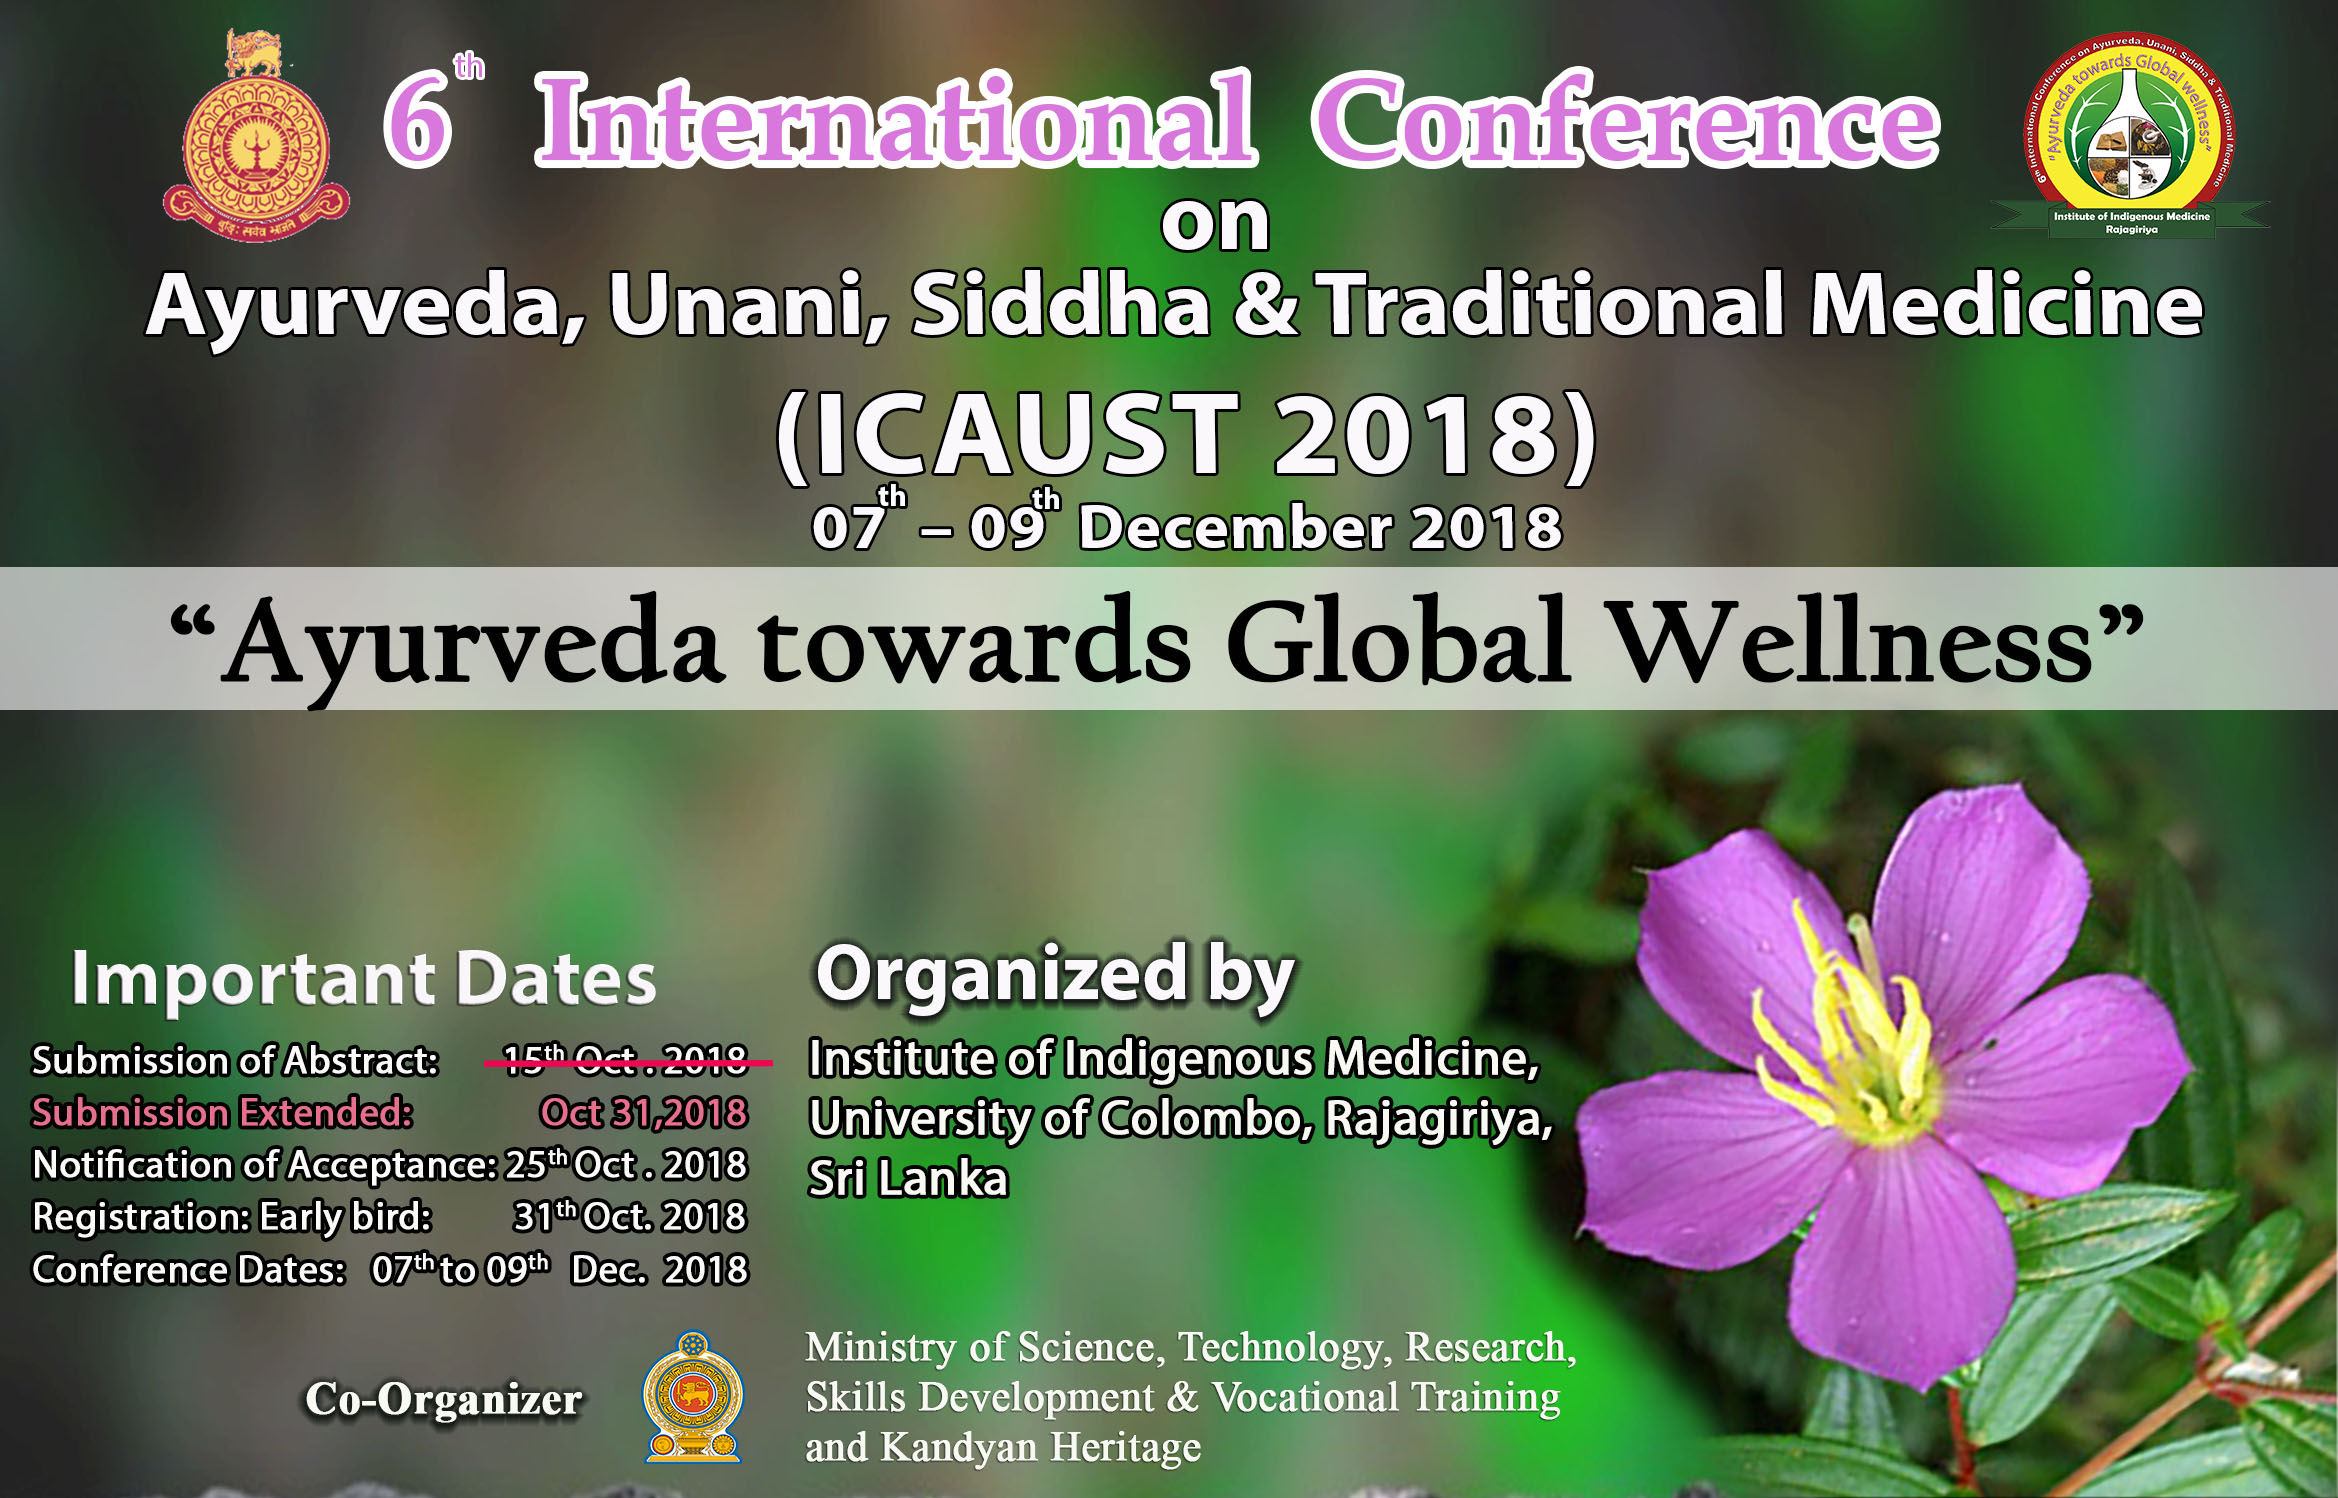 ICAUST 2018-Abstract submission deadline extended